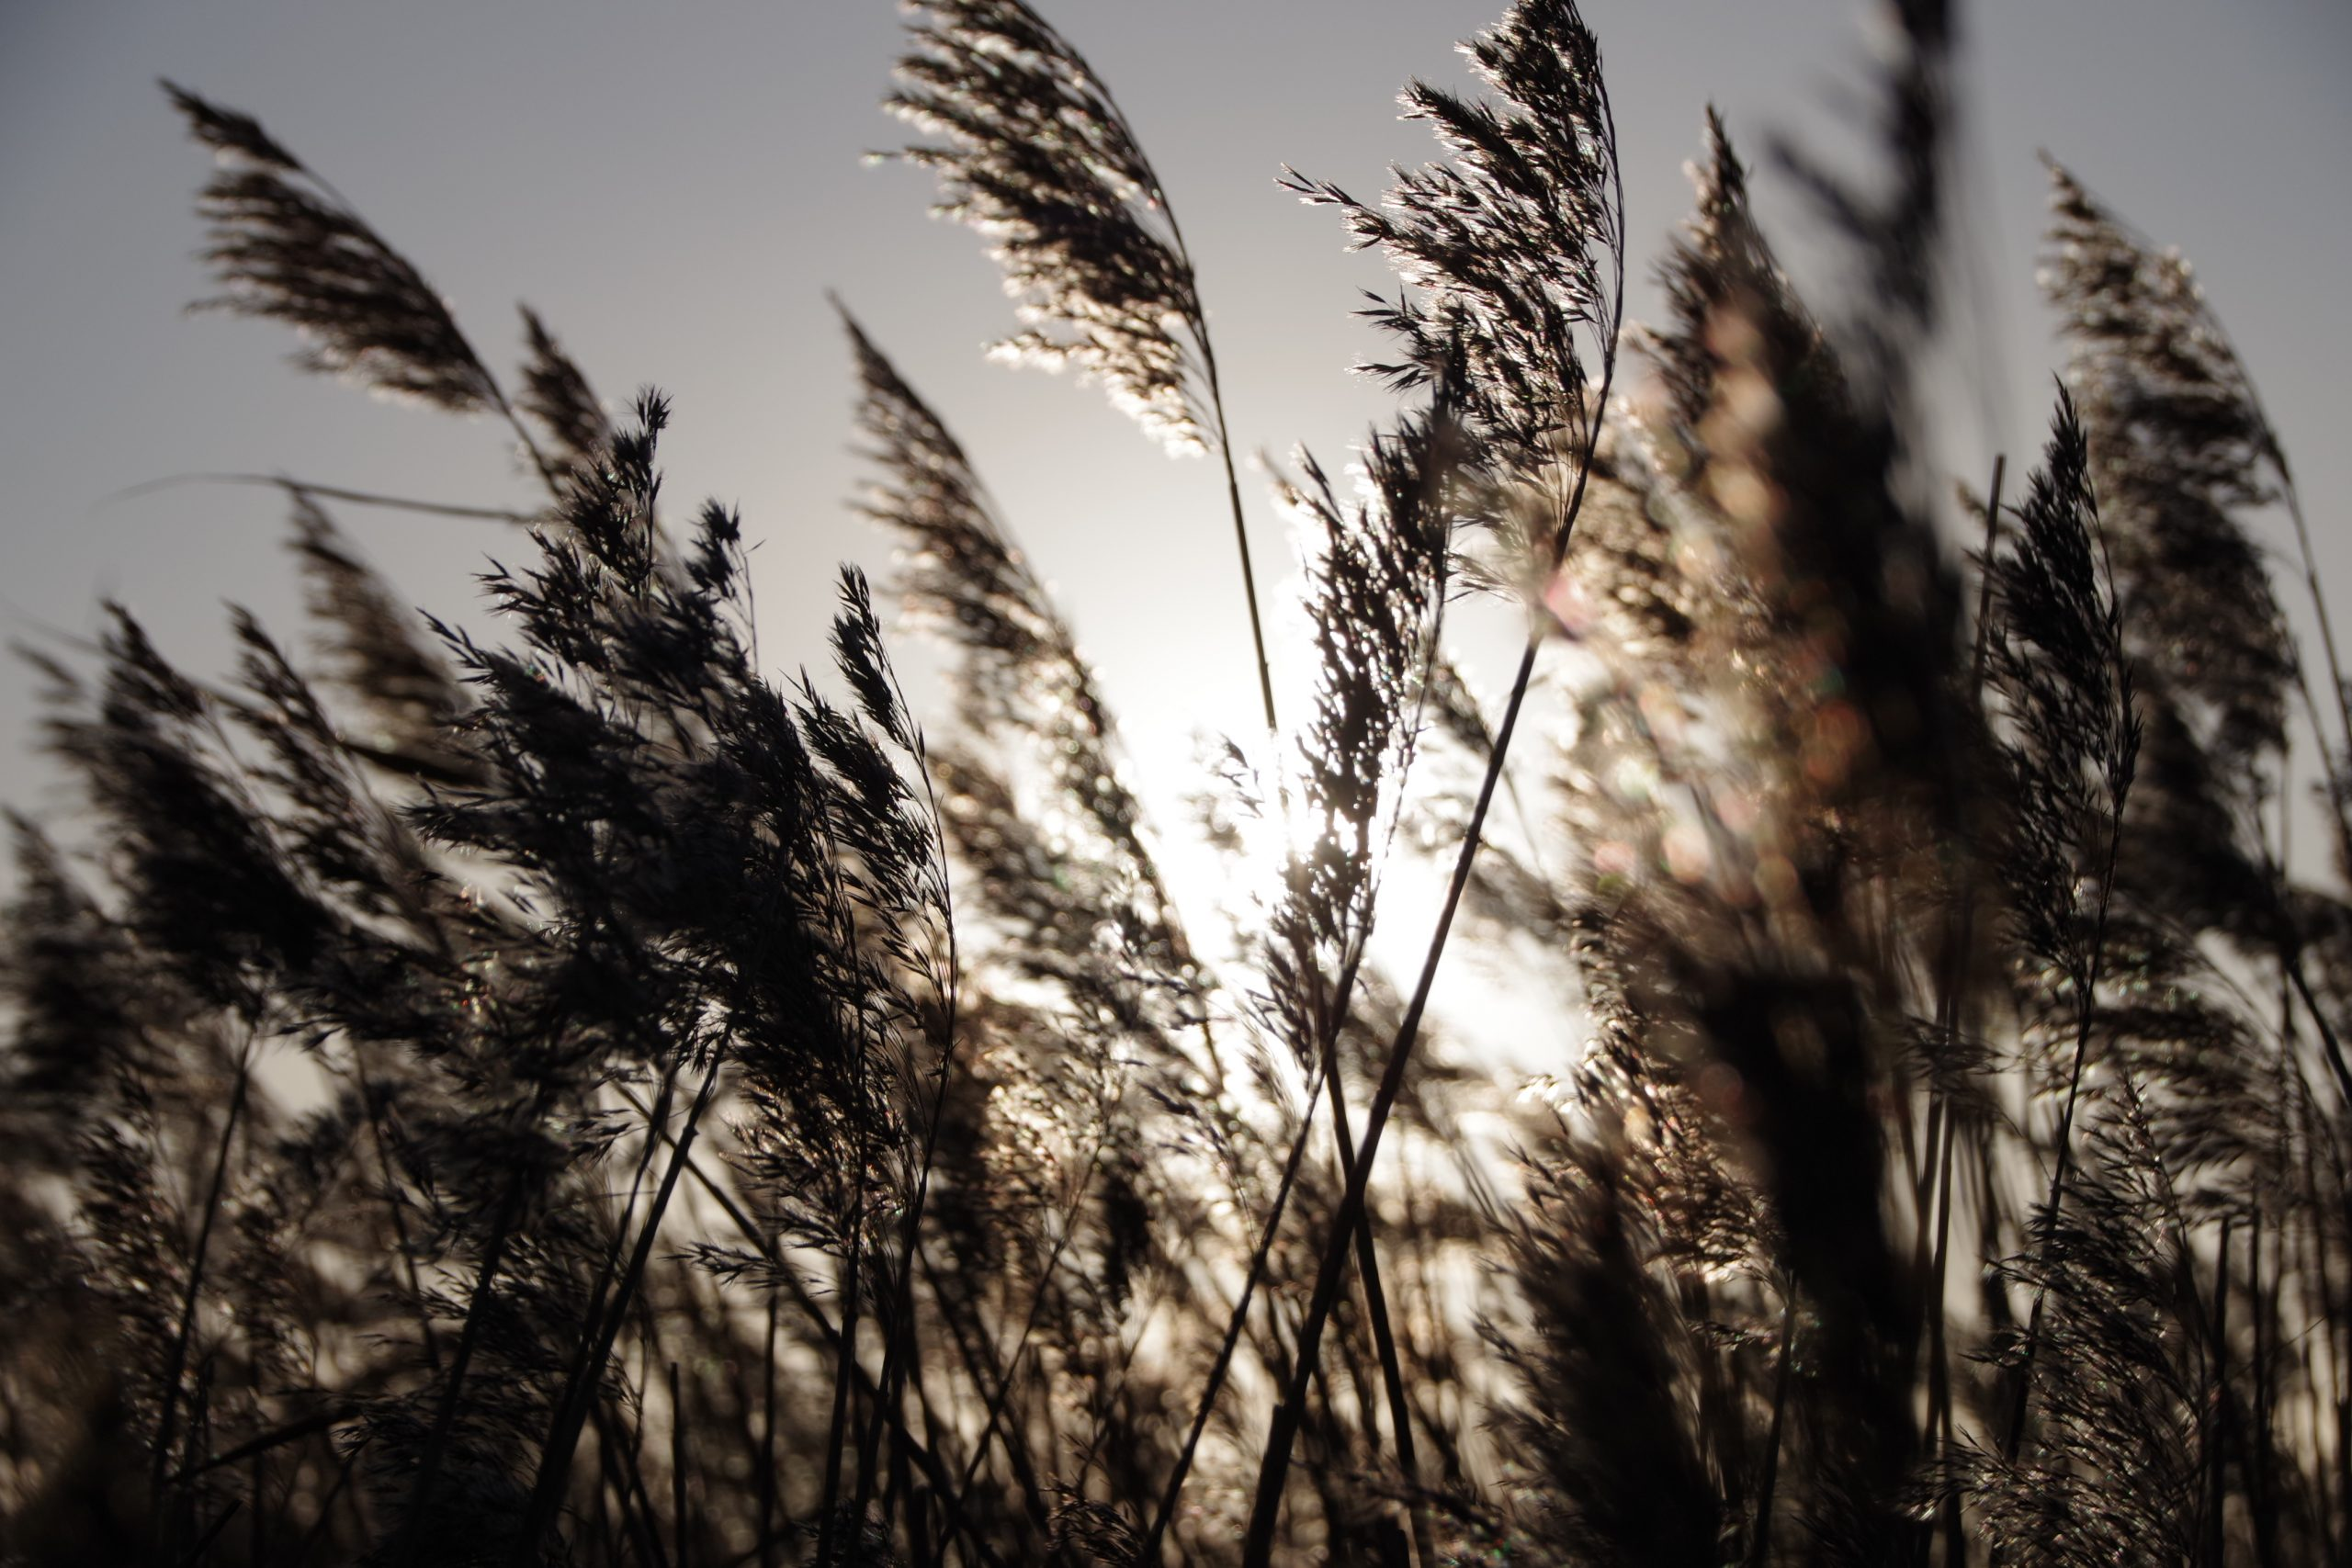 Lines, reeds and rushes